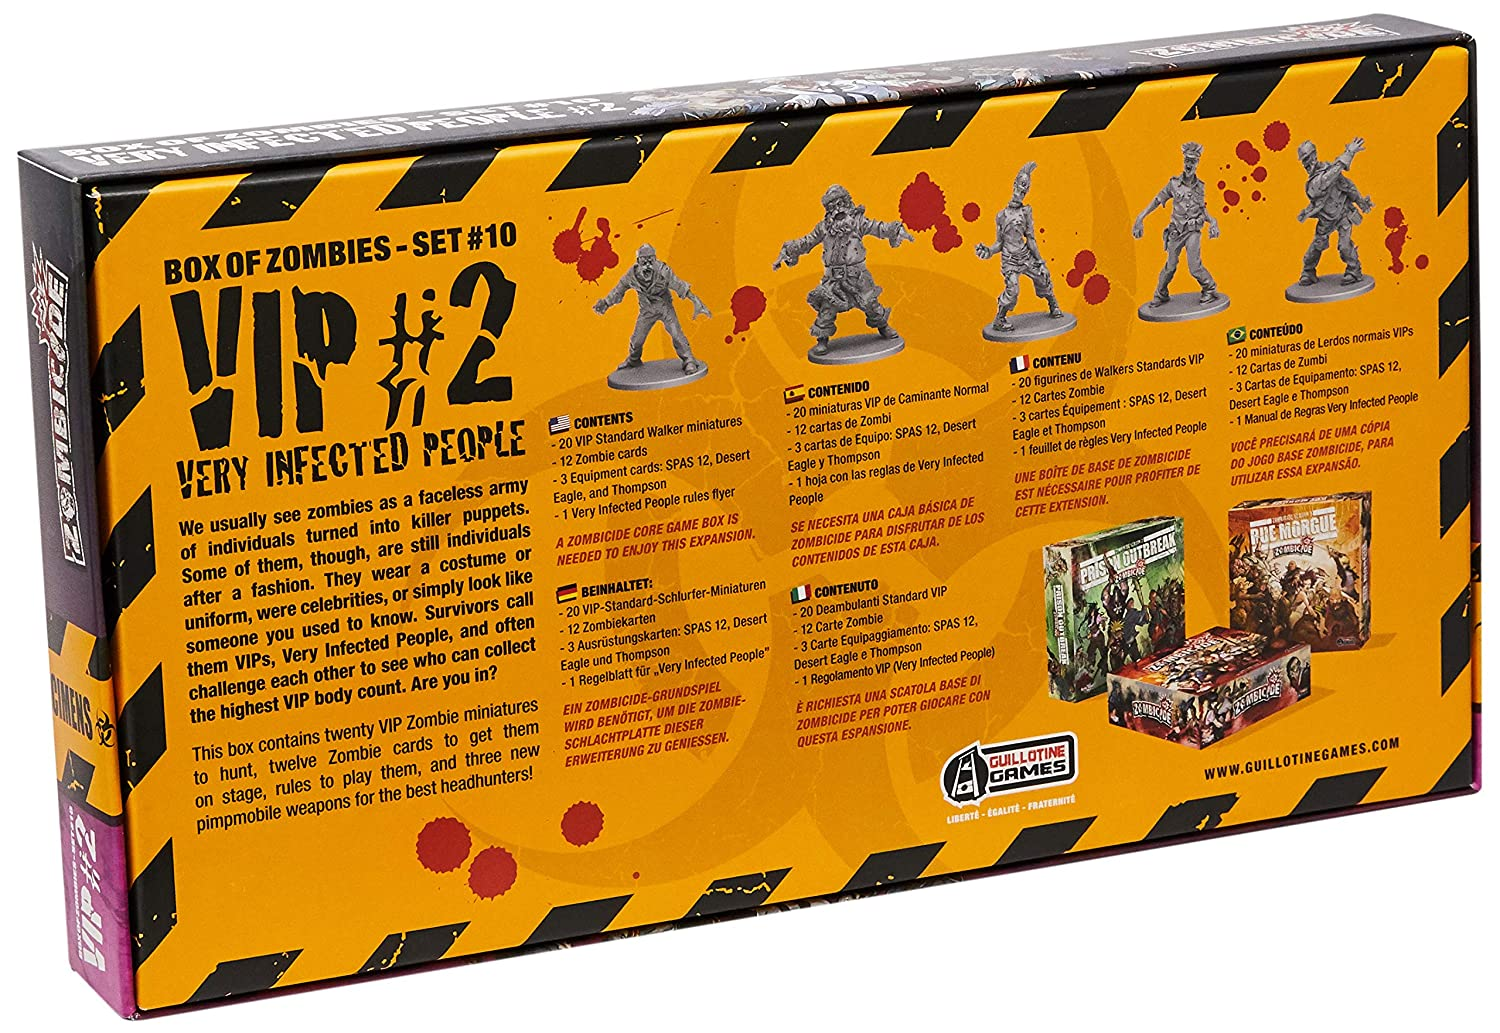 Zombicide Box of Zombies 10 Very Infected People 2 Board Game